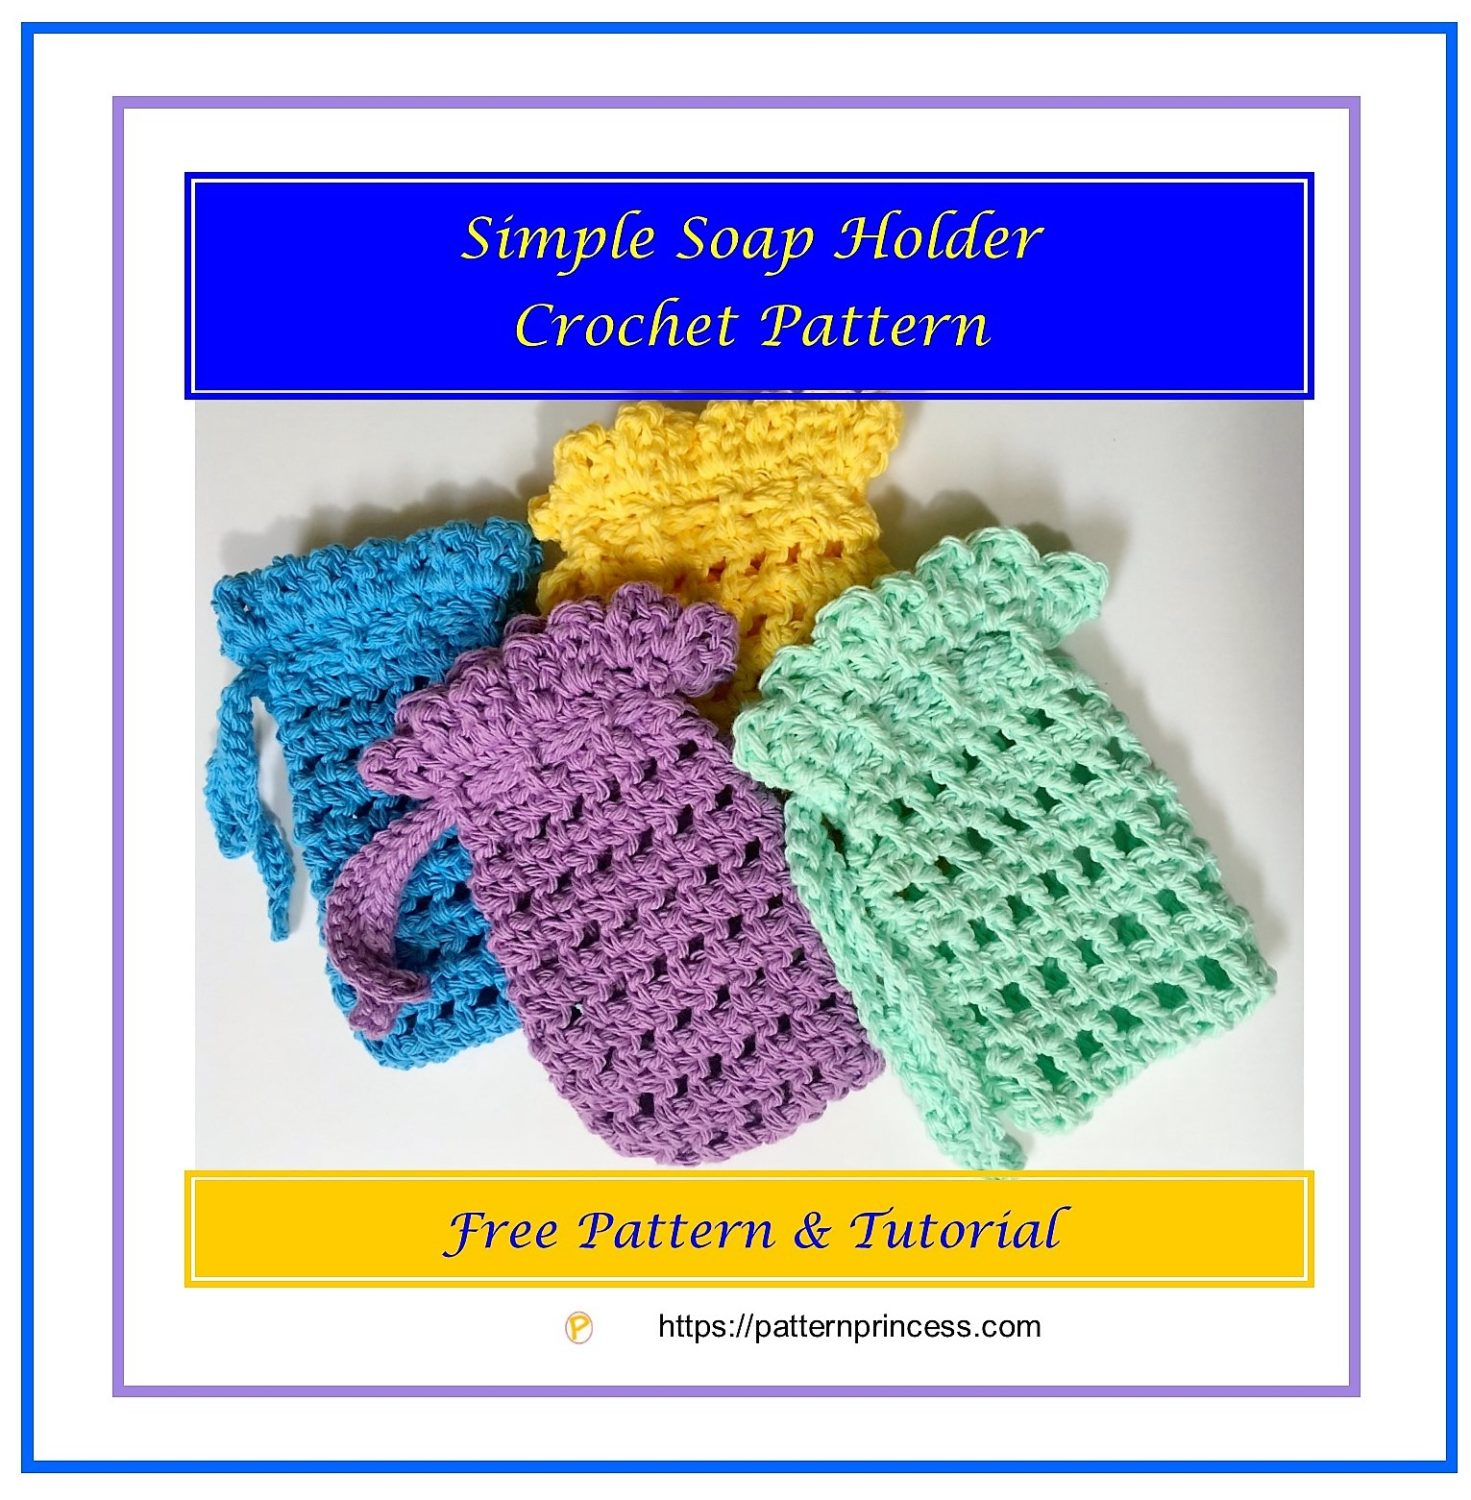 Simple Soap Holder Crochet Pattern 1